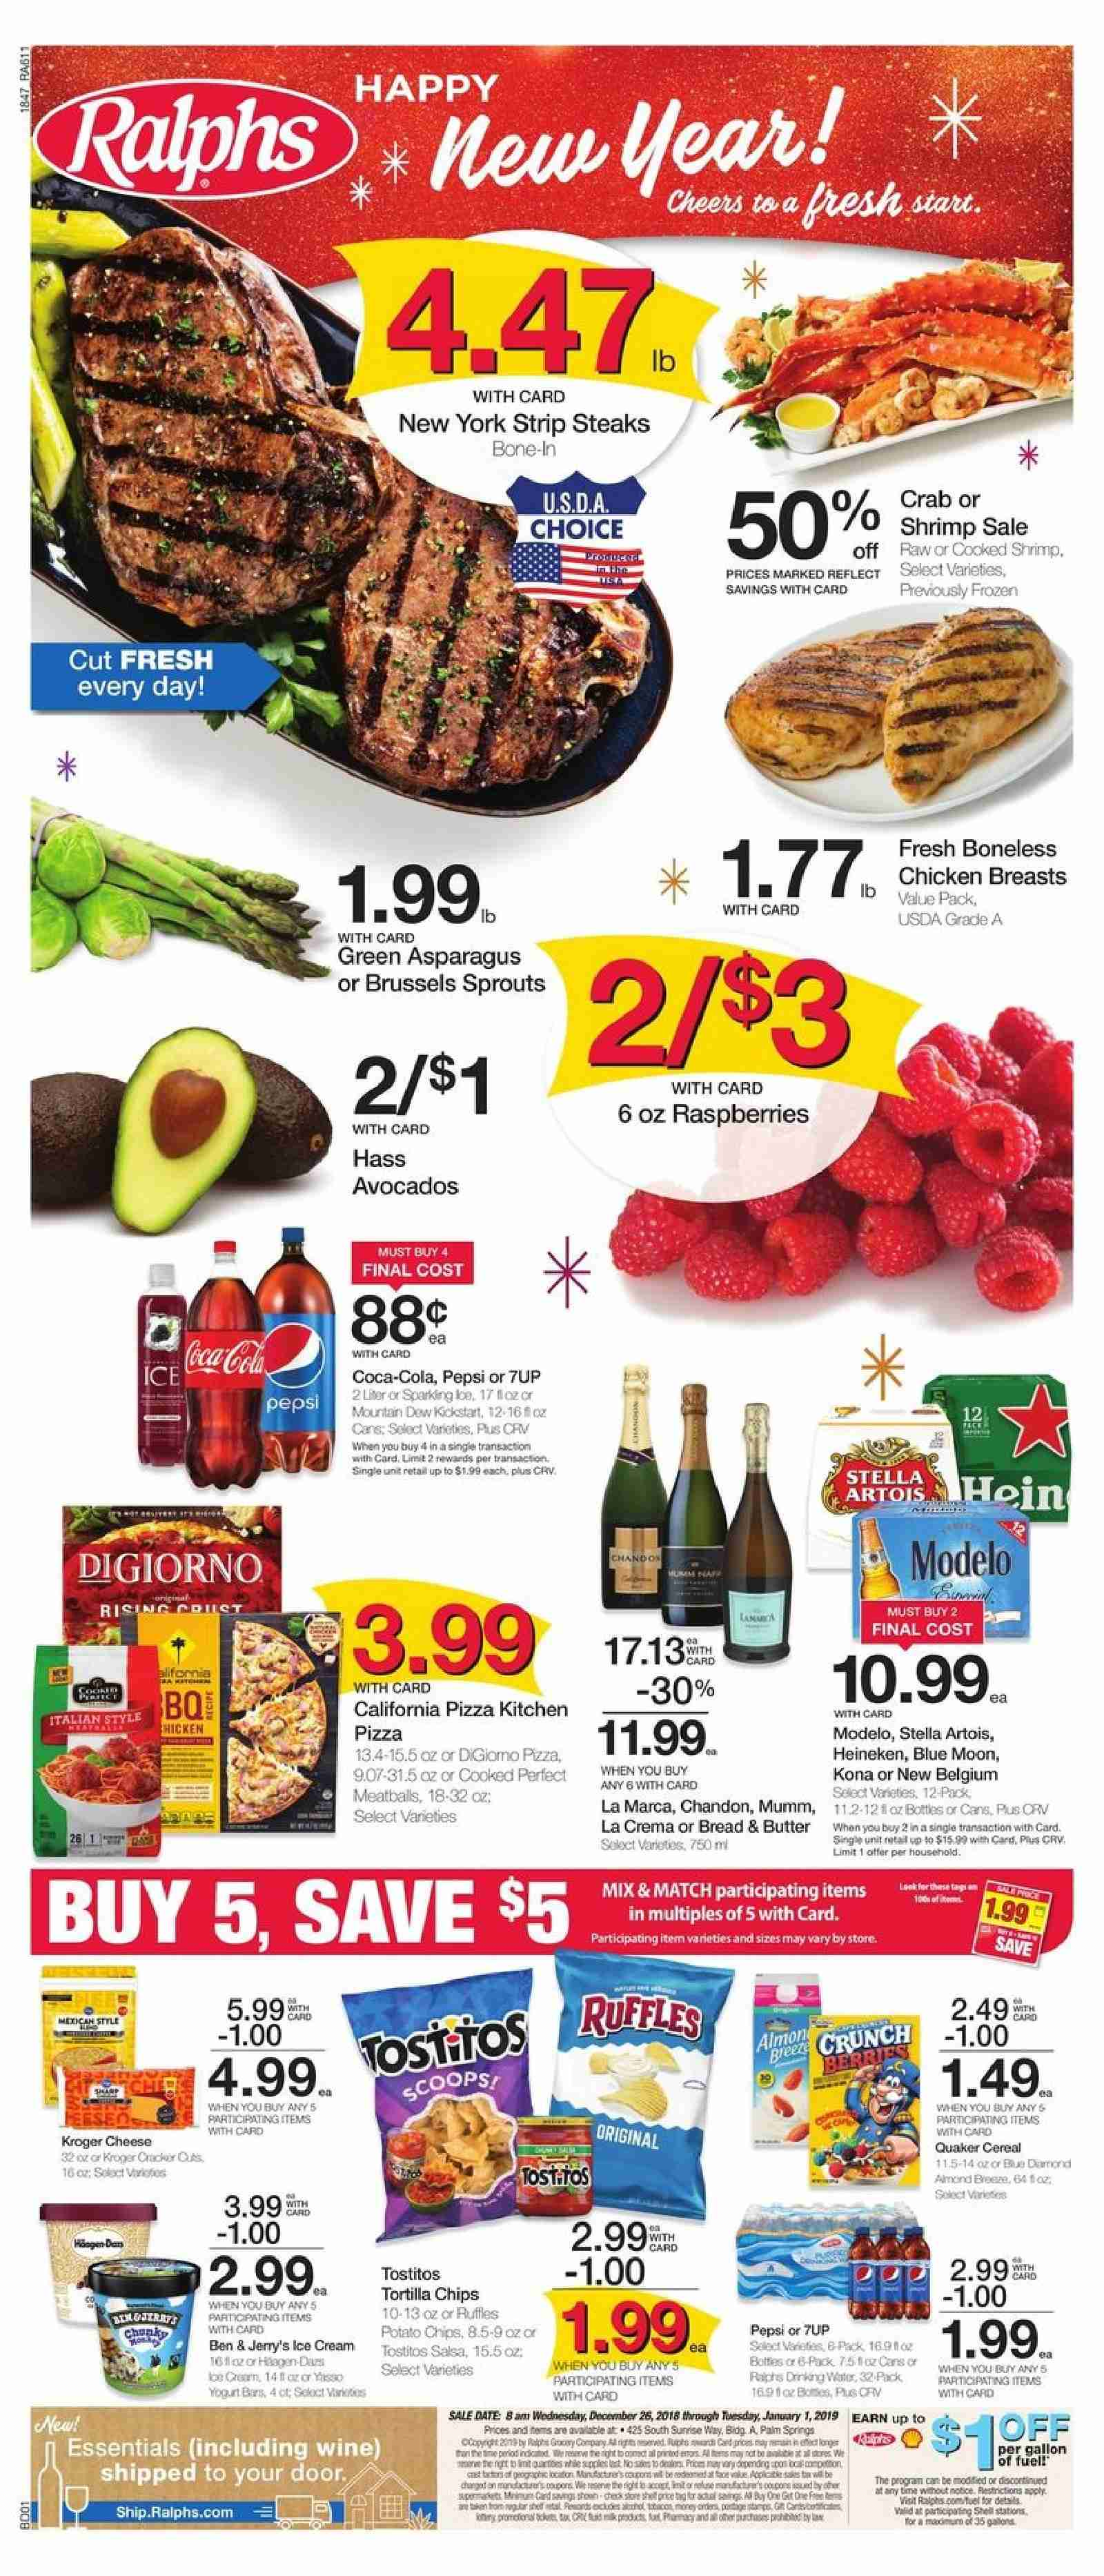 Ralphs Flyer  - 12.26.2018 - 01.01.2019. Page 1.